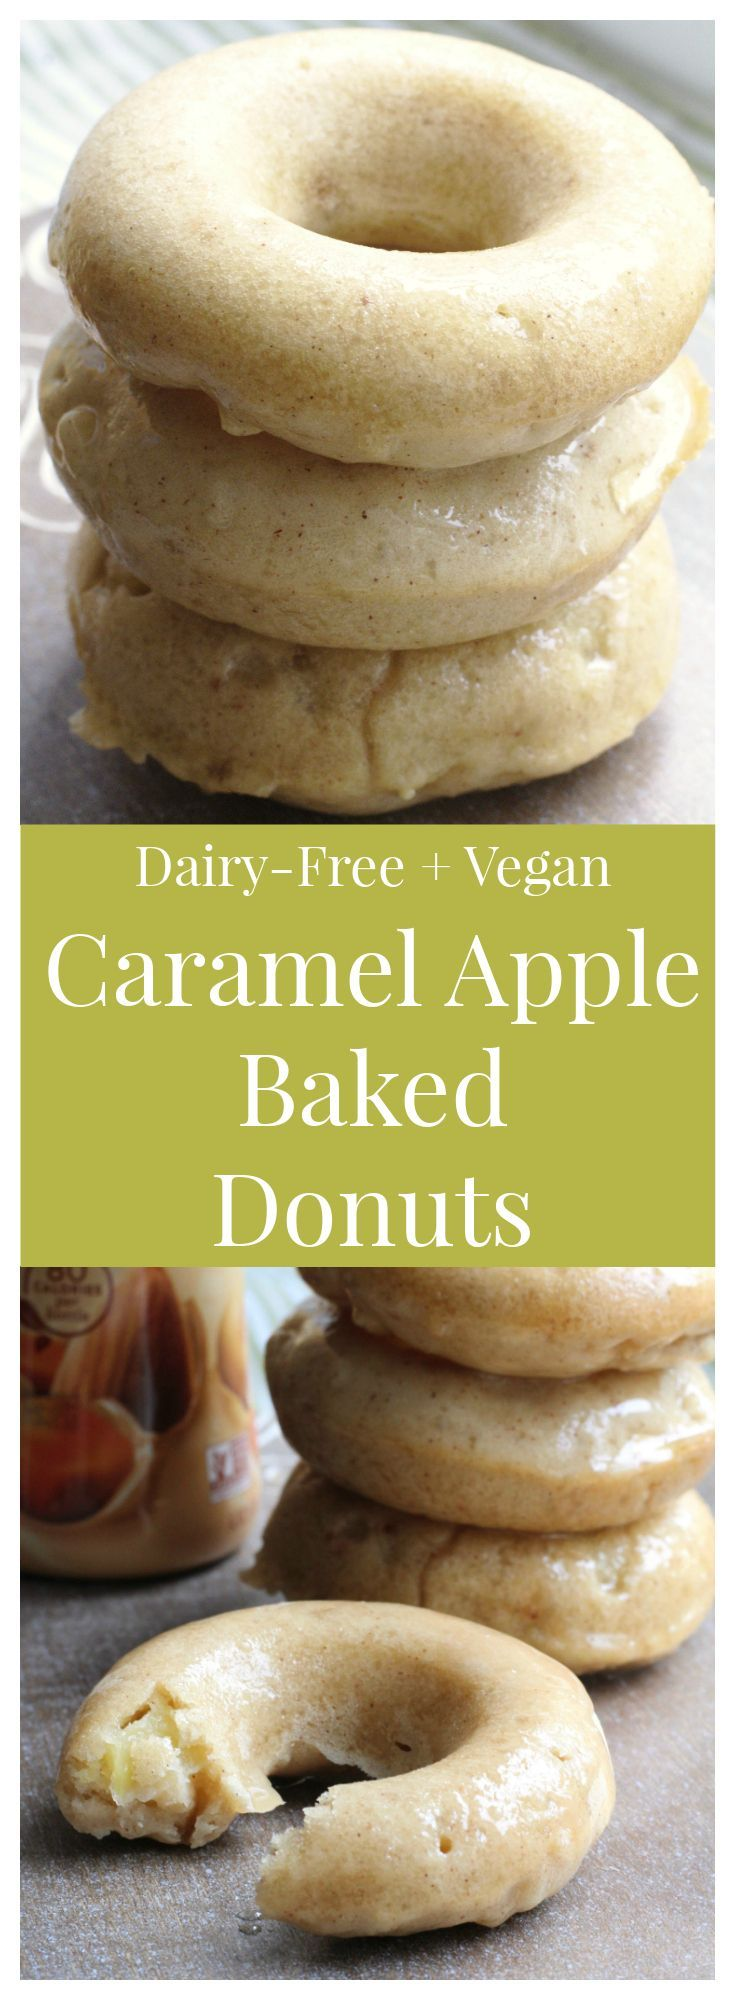 Caramel Apple Baked Donuts – Start your day off right with these wonderful dairy-free and vegan apple donuts with a delicious homemade caramel glaze made with @LoveMySilk! #PlantBasedGoodness [ad]